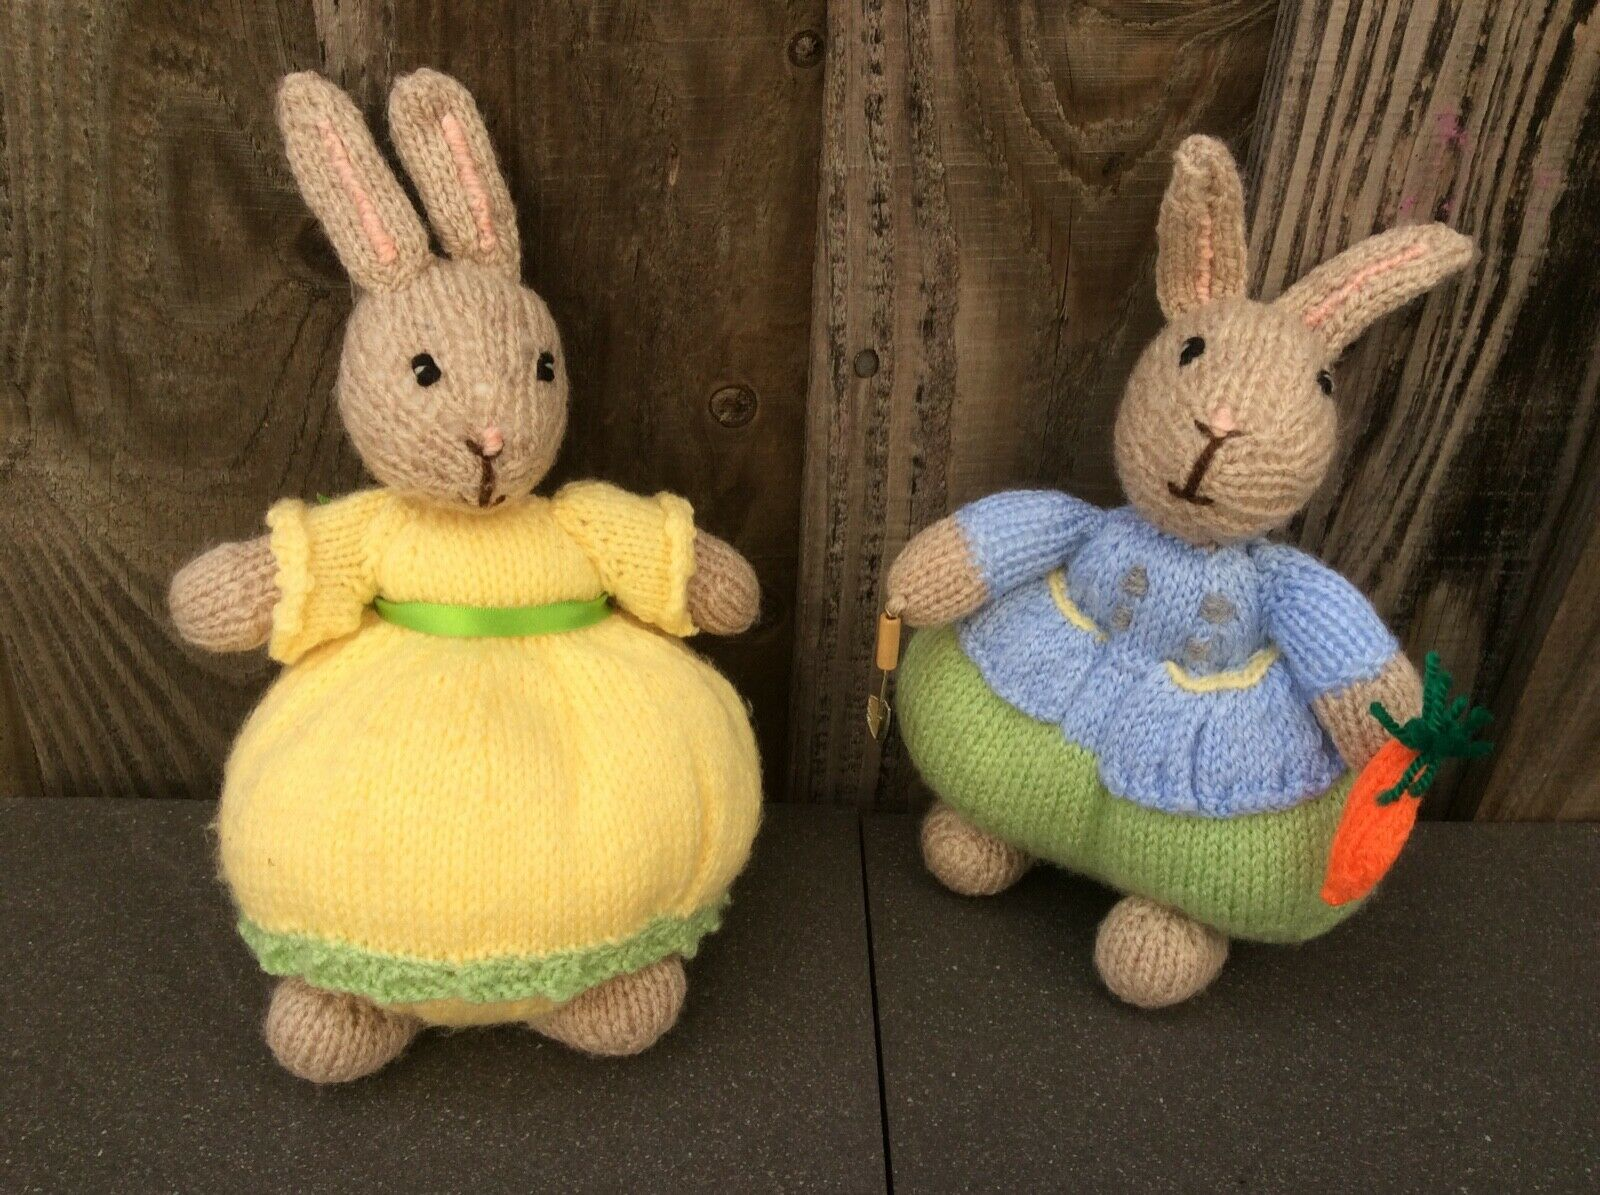 2 X HAND MADE KNITTED SMALL SOFT BODIED BUNNY RABBITS(ANIMALS) BOY & GIRL